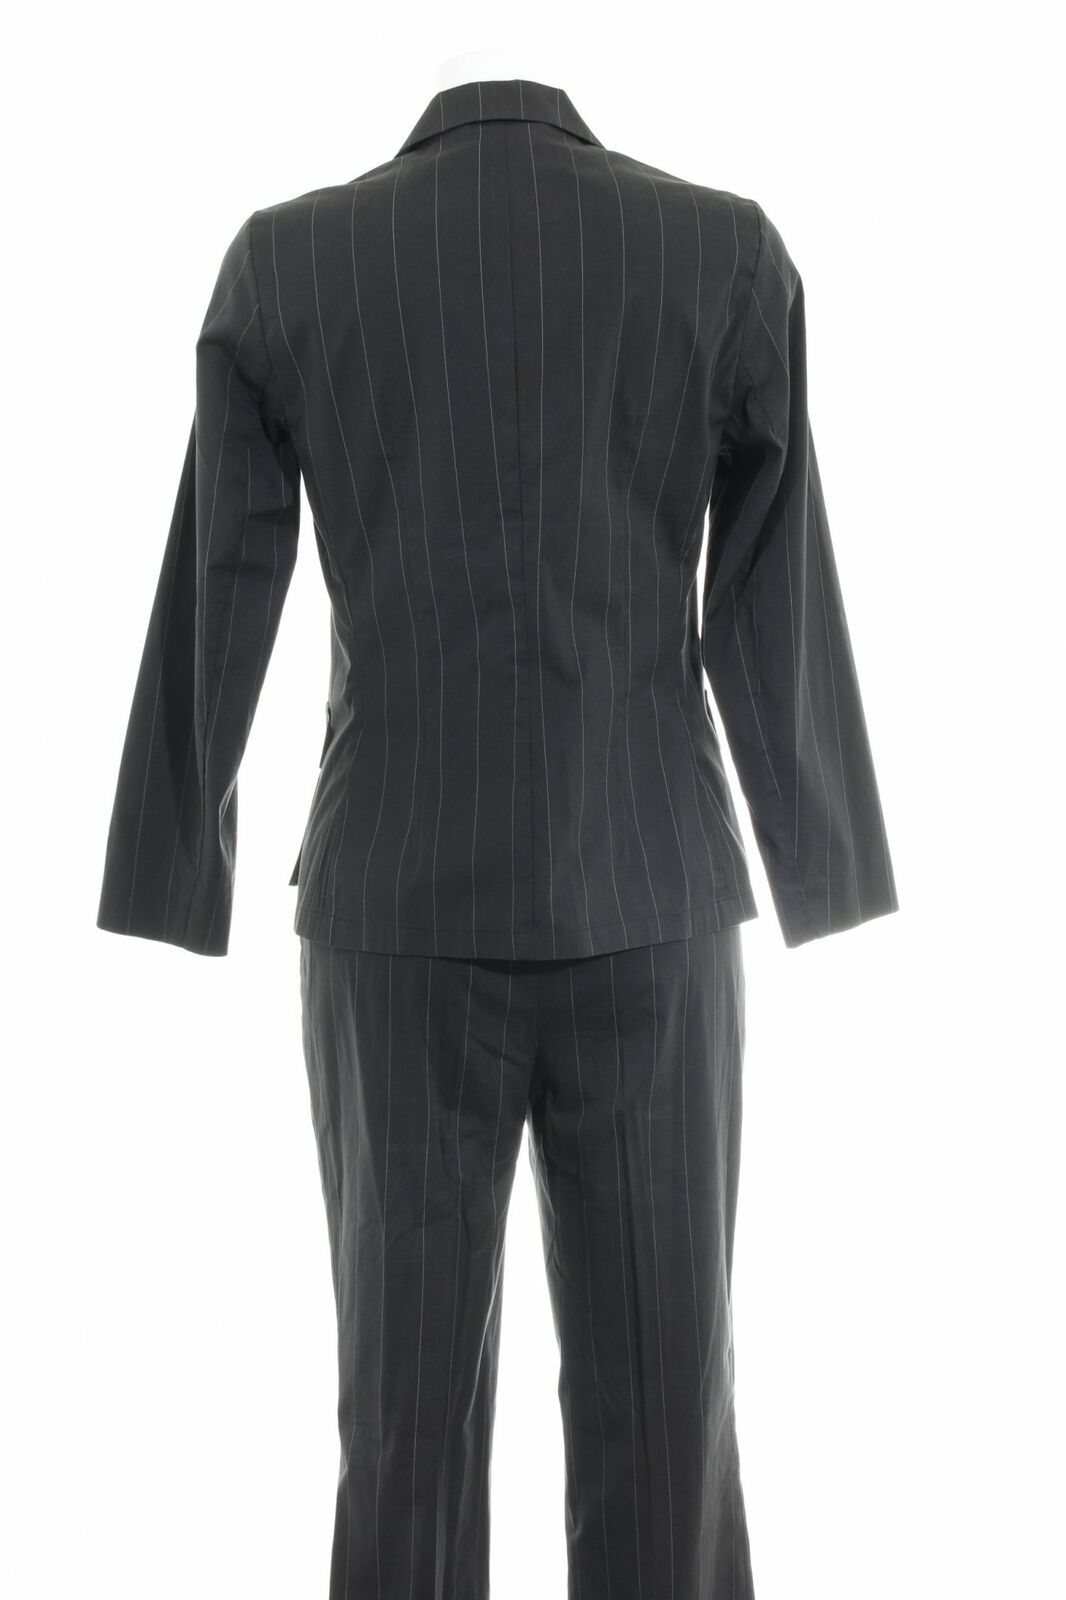 Costume clothcraft Grigio Marronee Marronee Marronee Gessato business-look da donna tg. de 36 Tuta c702c0